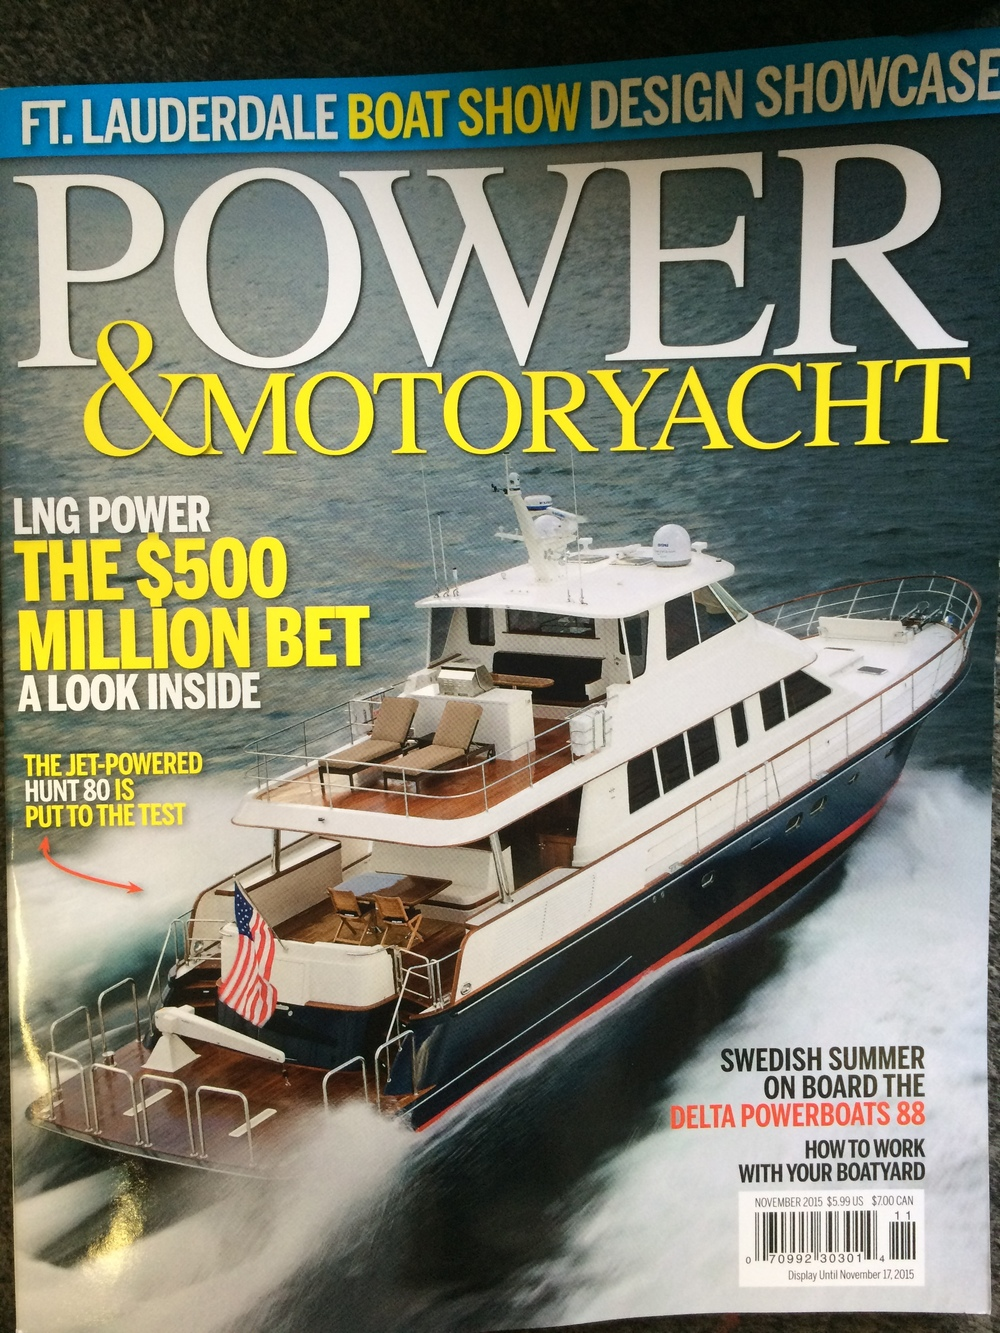 Power Motor Yacht cover.JPG